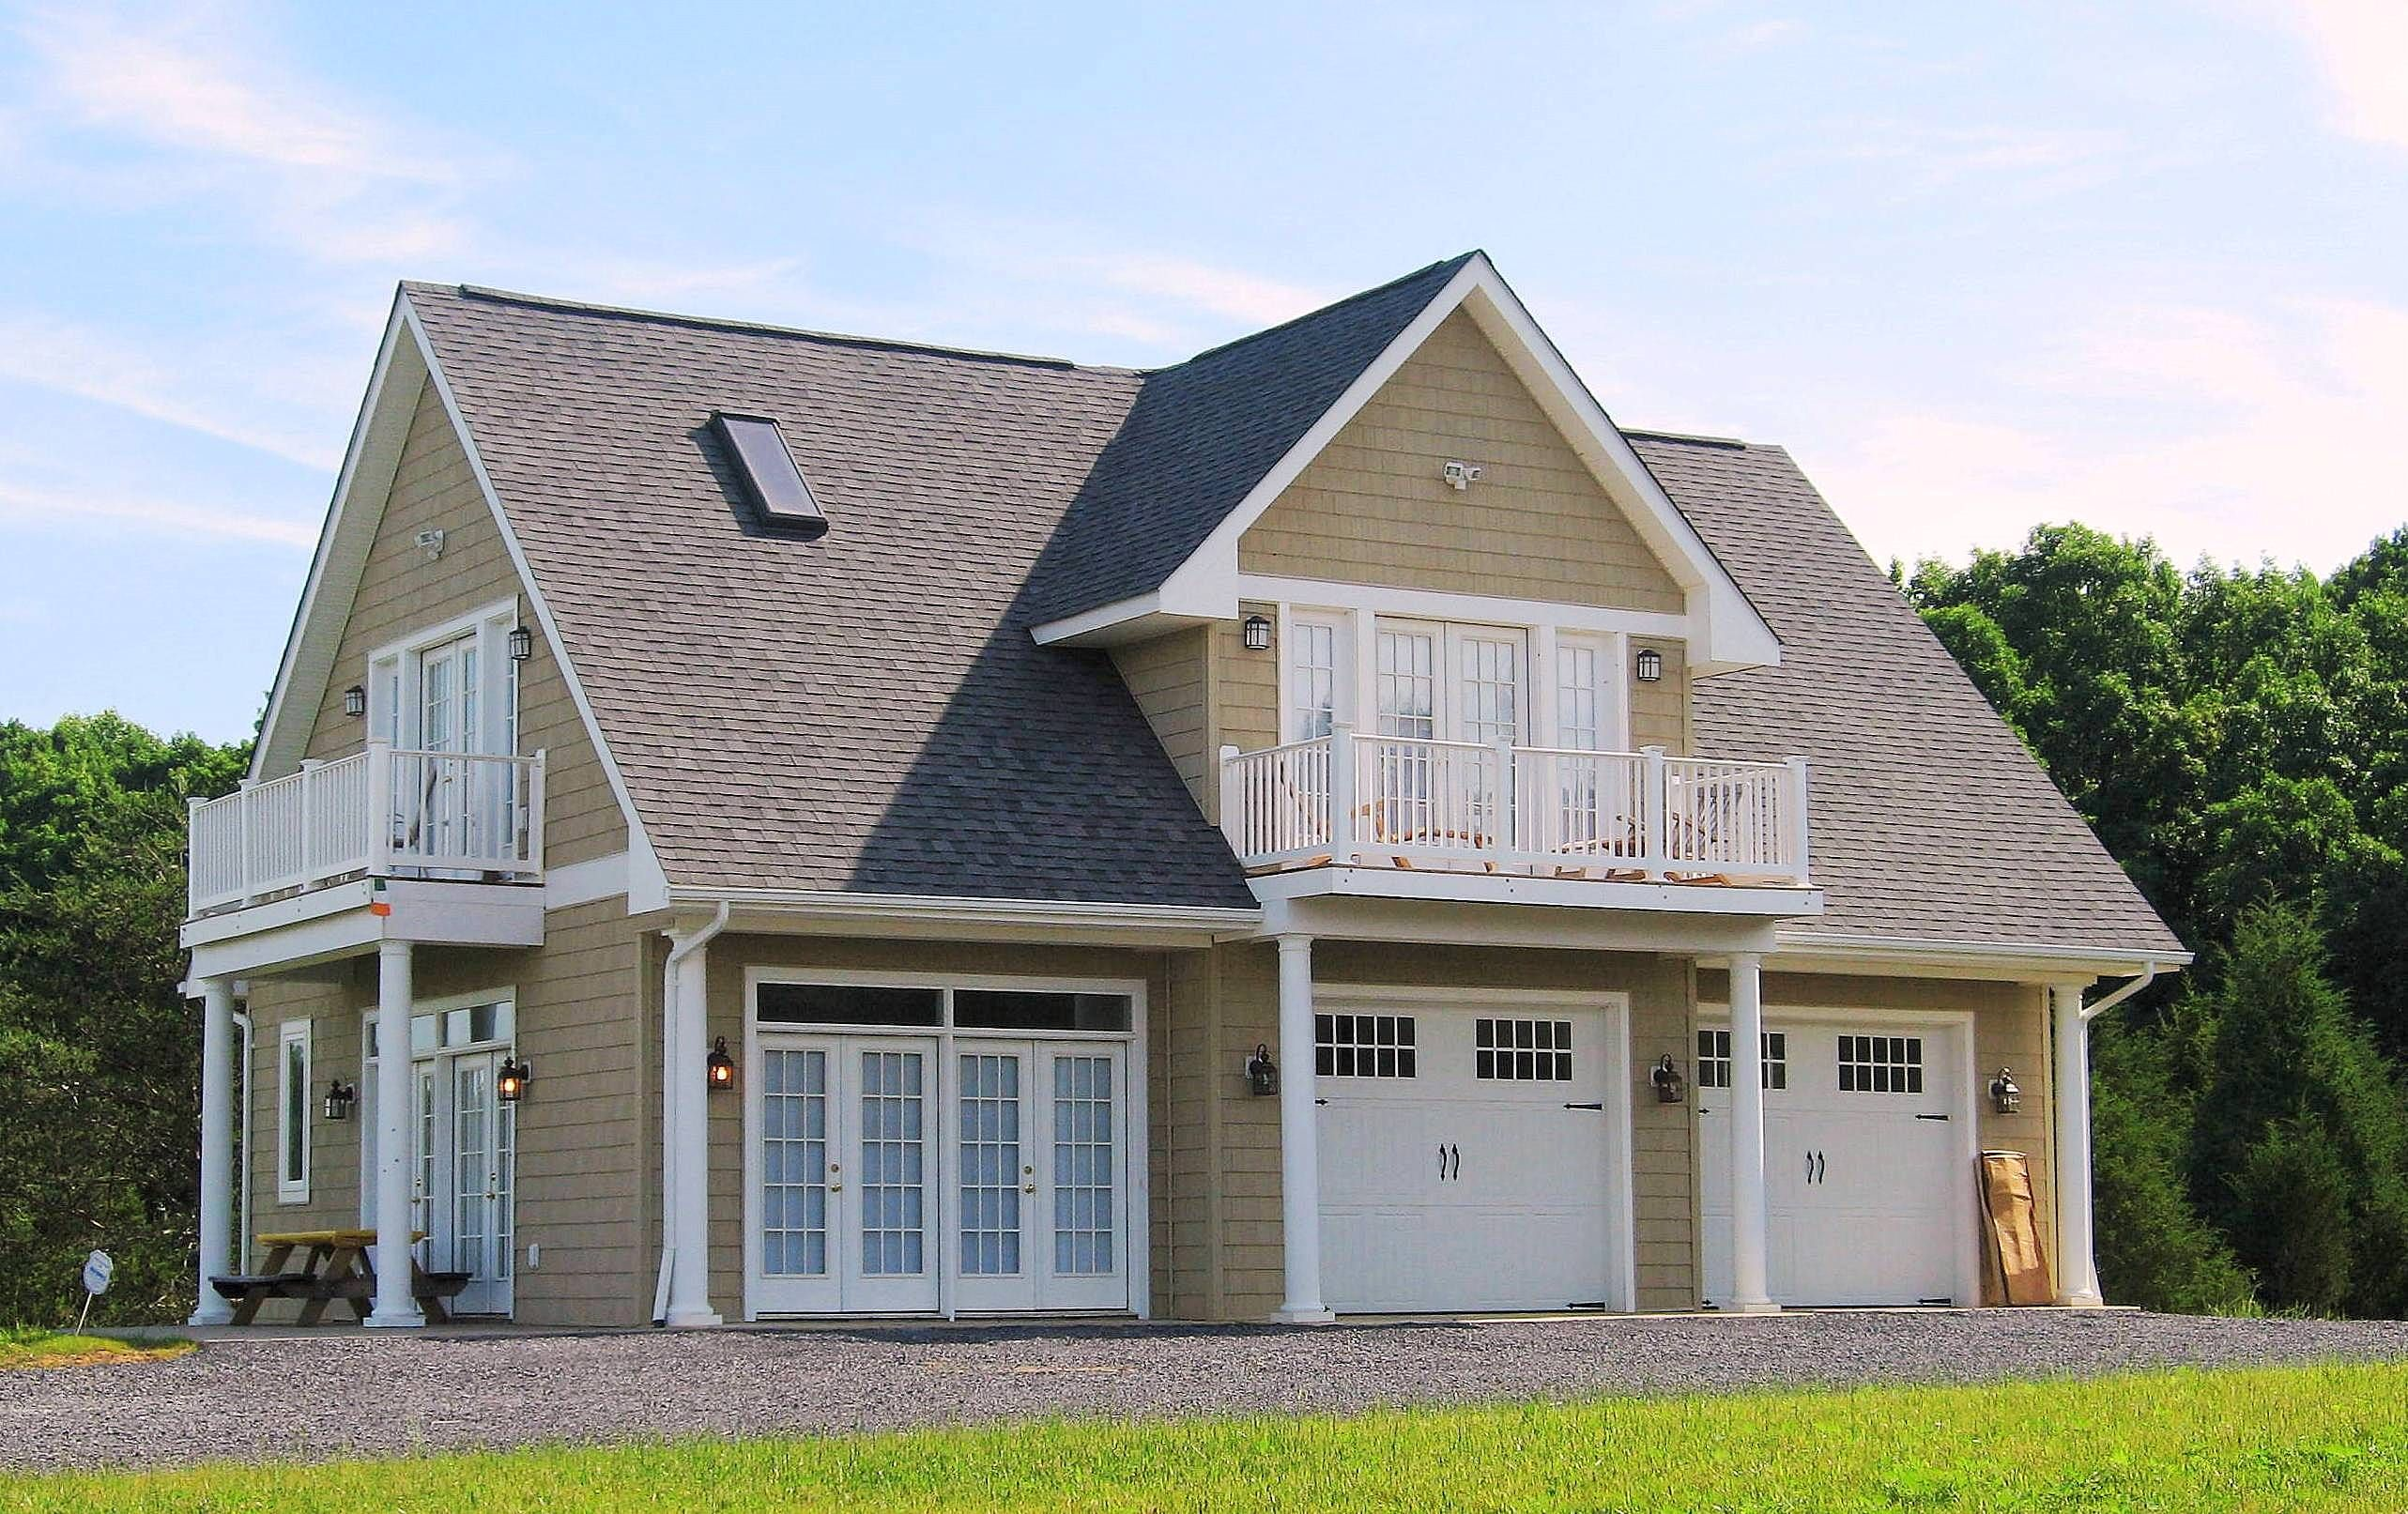 Barn Plans With Apartment Above  Above Garage Apartment  Extra Spaces  Pinterest  Garage